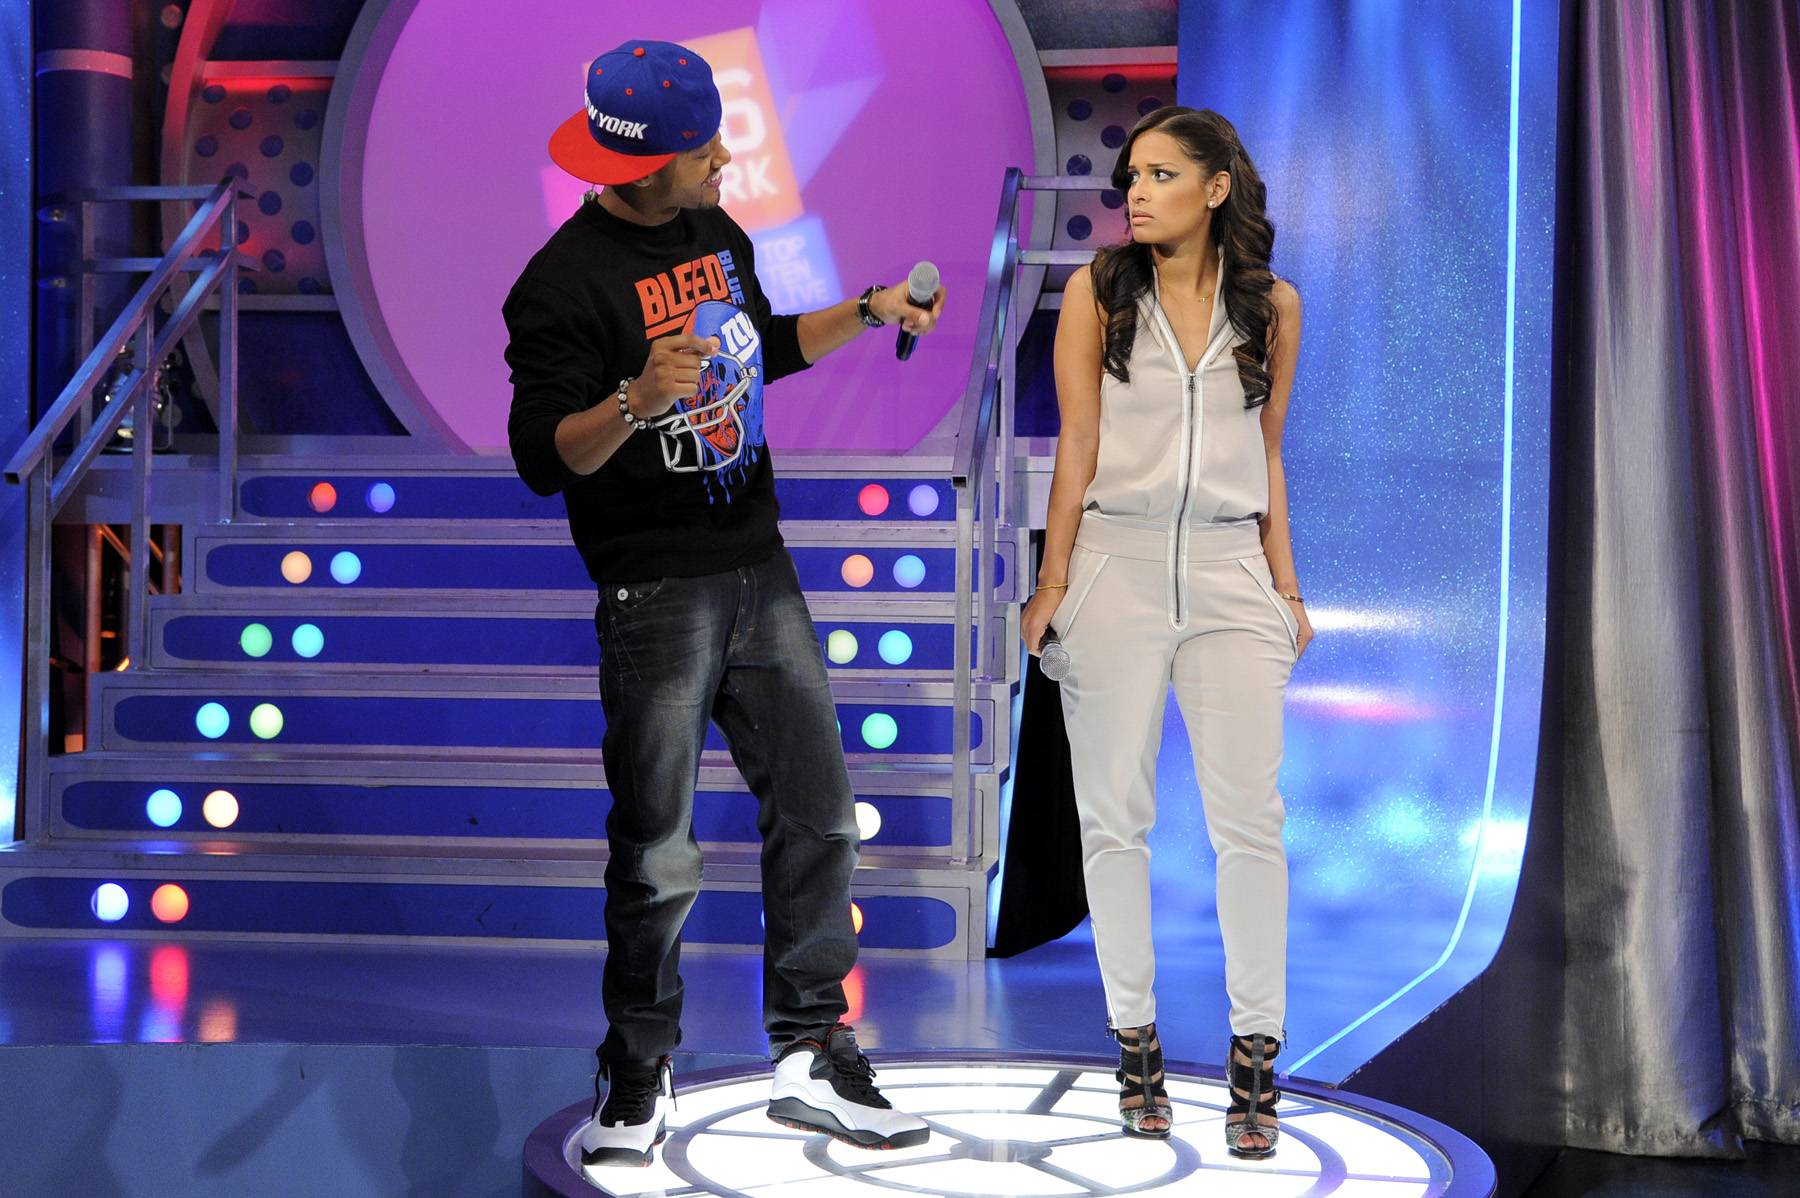 What Was That? - Rocsi Diaz is not impressed with Terrence J's dancing at 106 & Park, January 20, 2012. (Photo: John Ricard / BET)